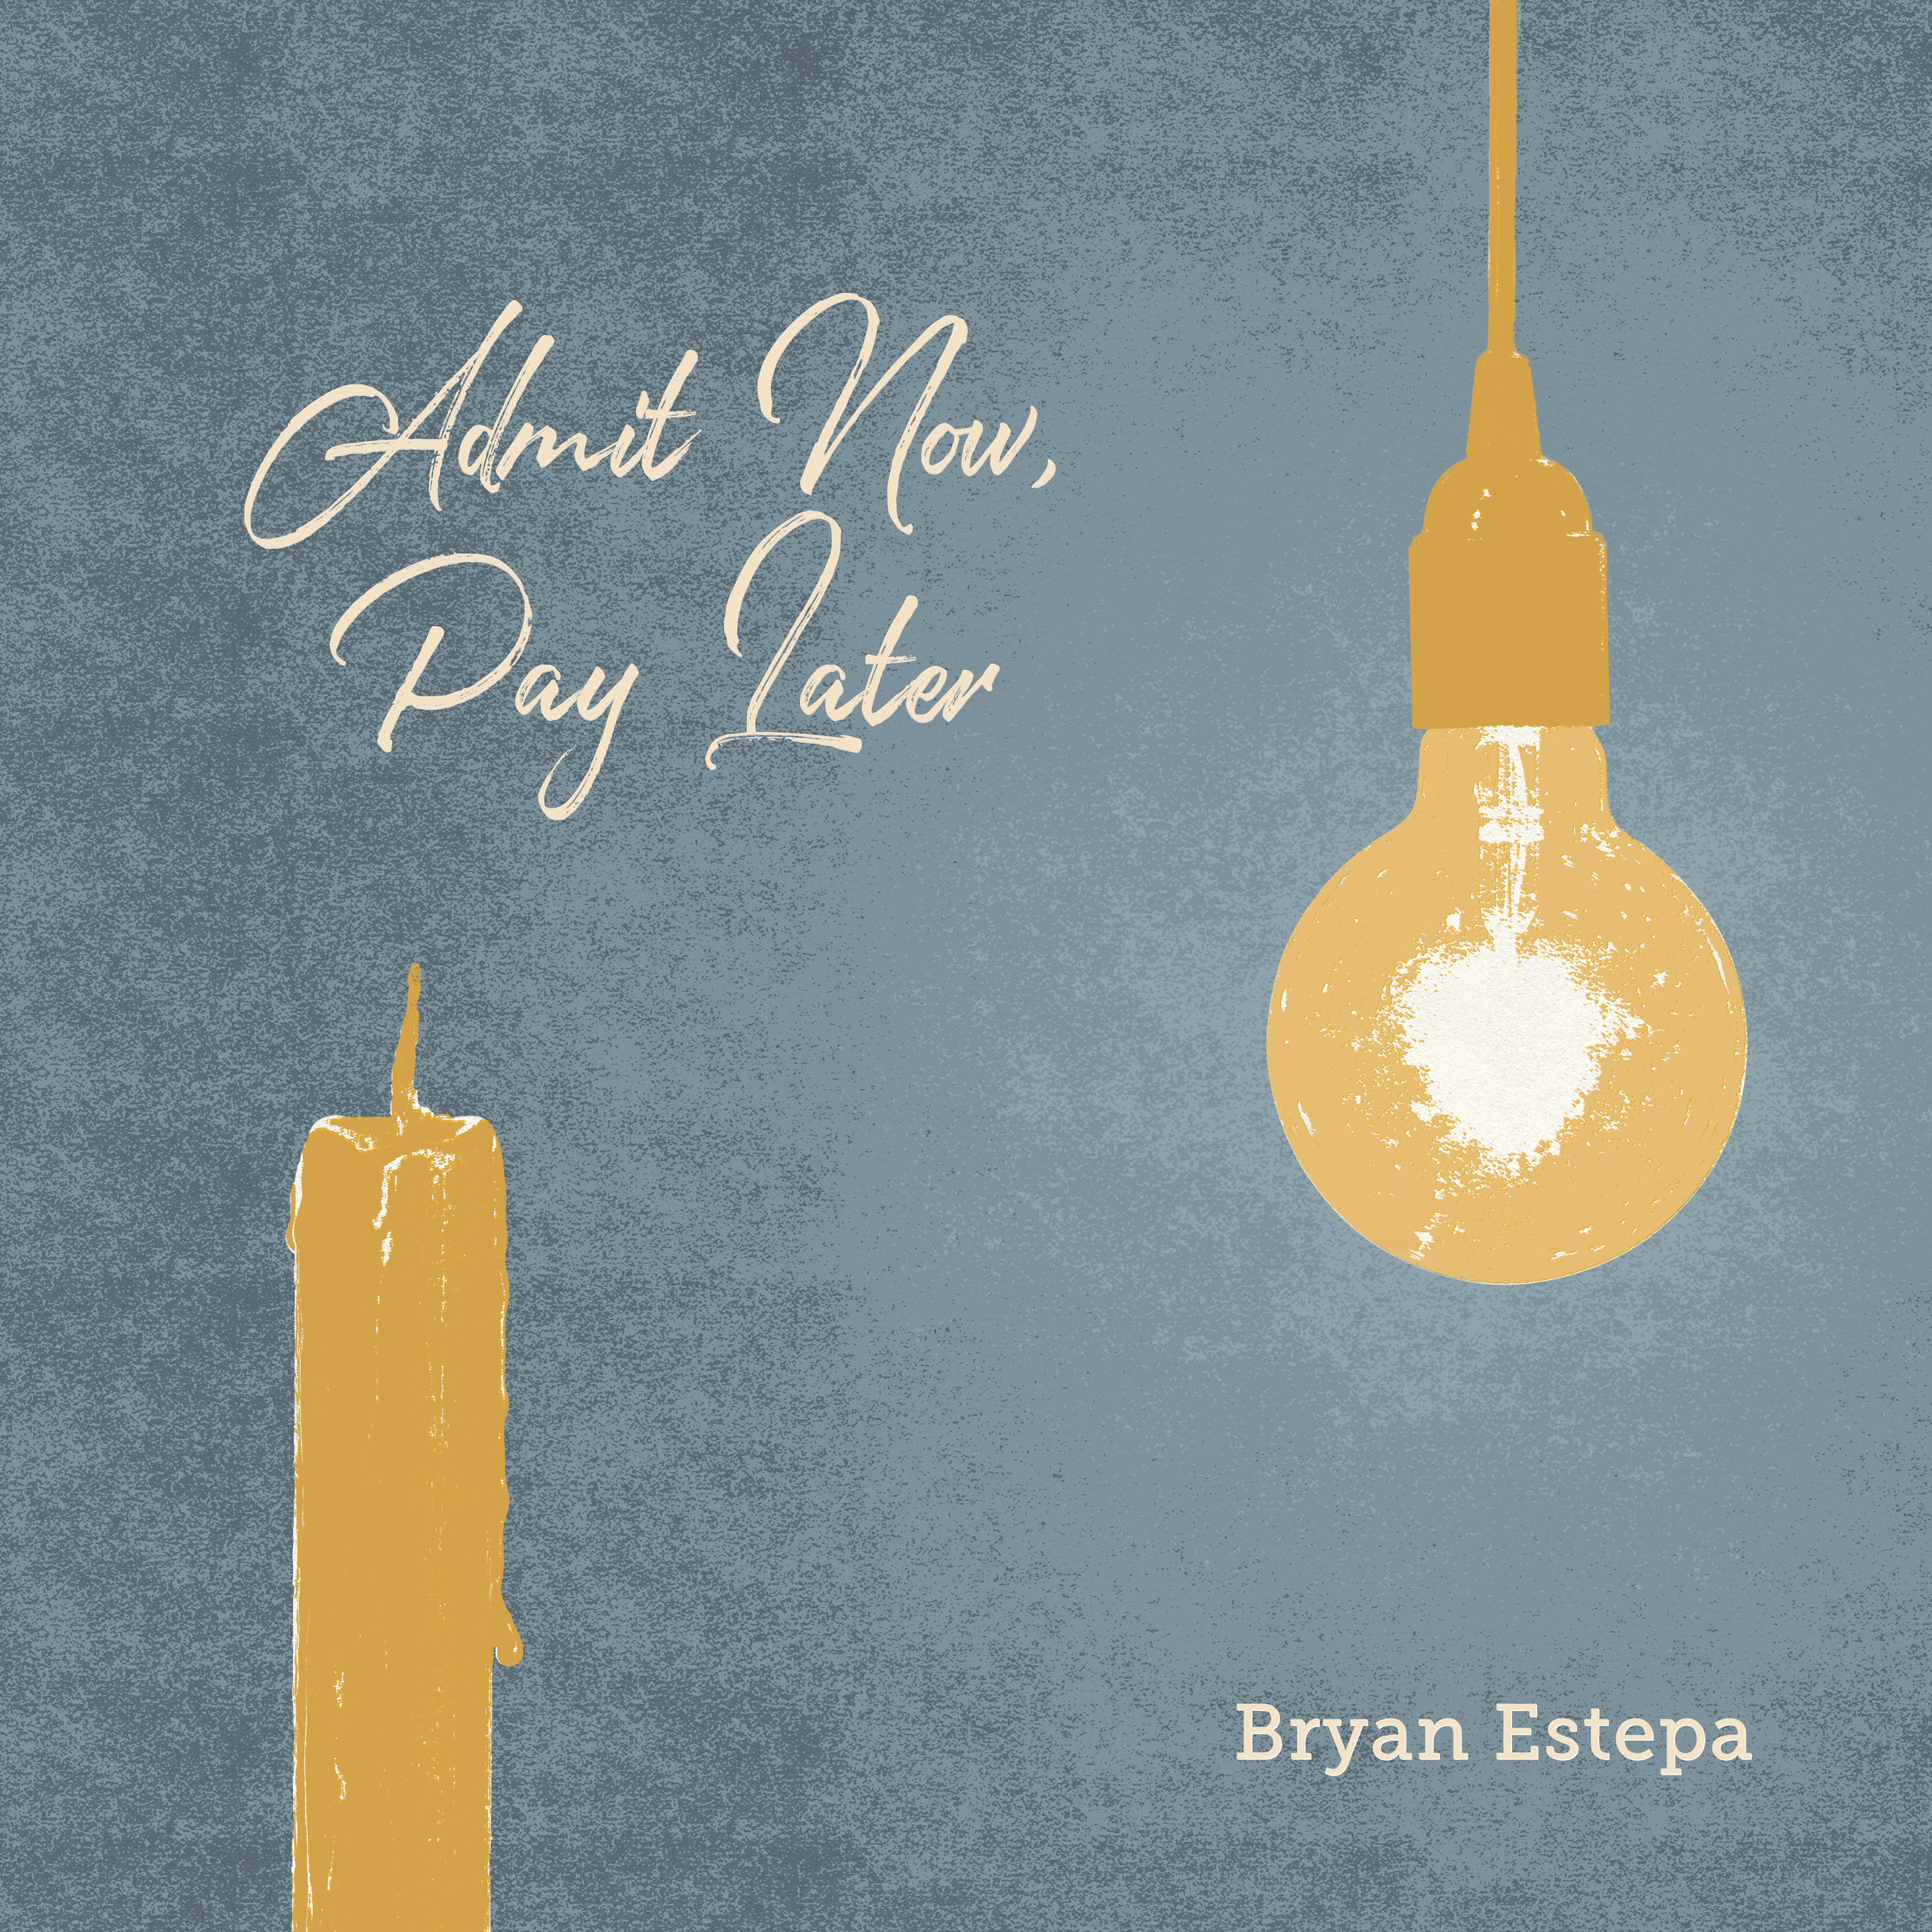 """Bryan Estepa deals with life's curveballs on new song """"Admit Now, Pay Later"""""""